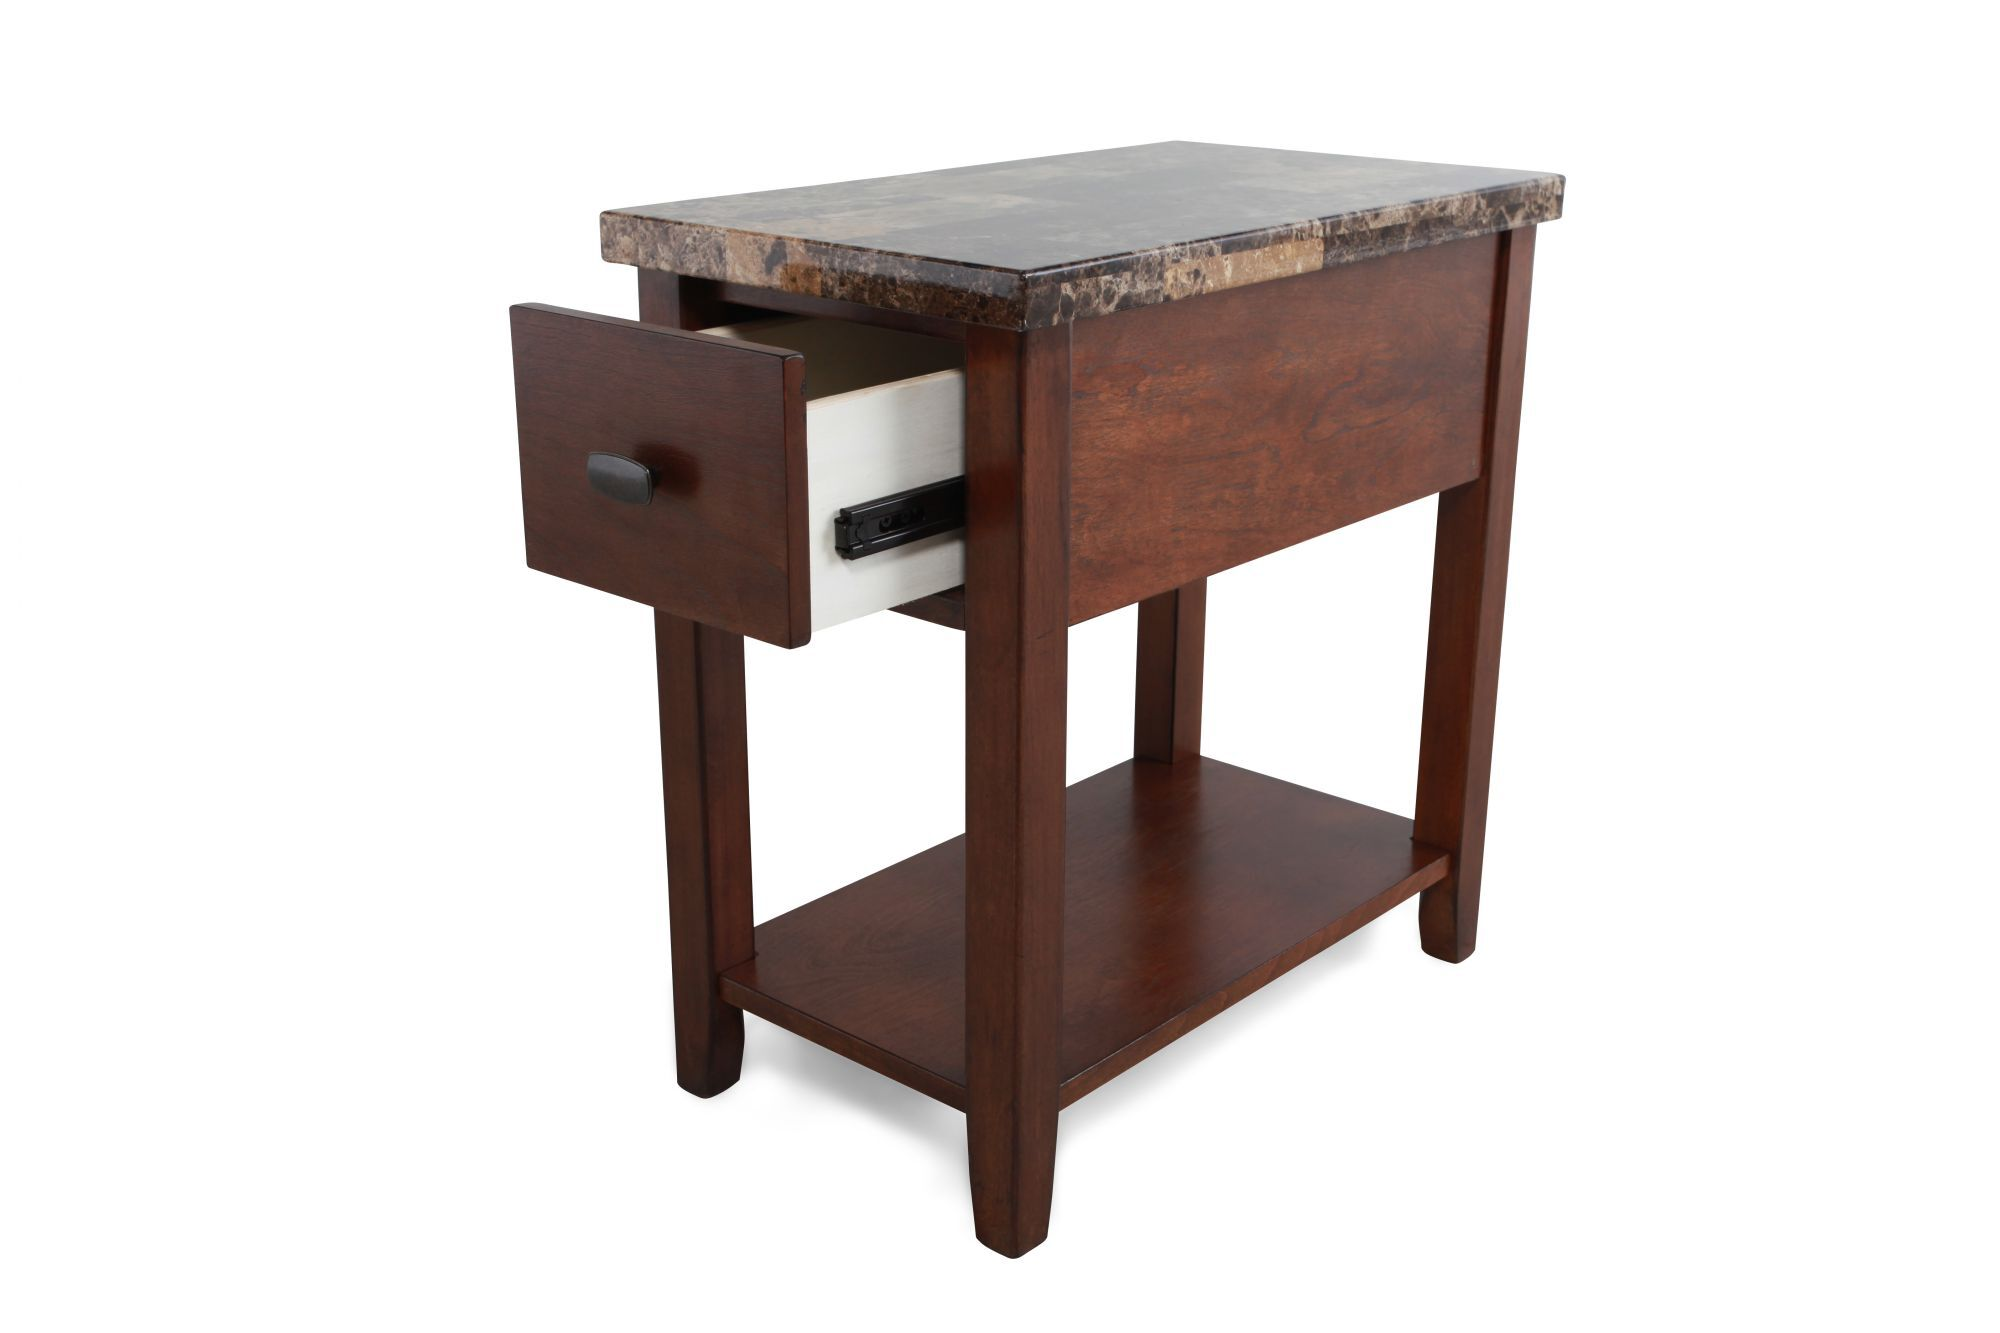 Modern Chairside Table Rectangular Contemporary Chairside Table In Medium Brown